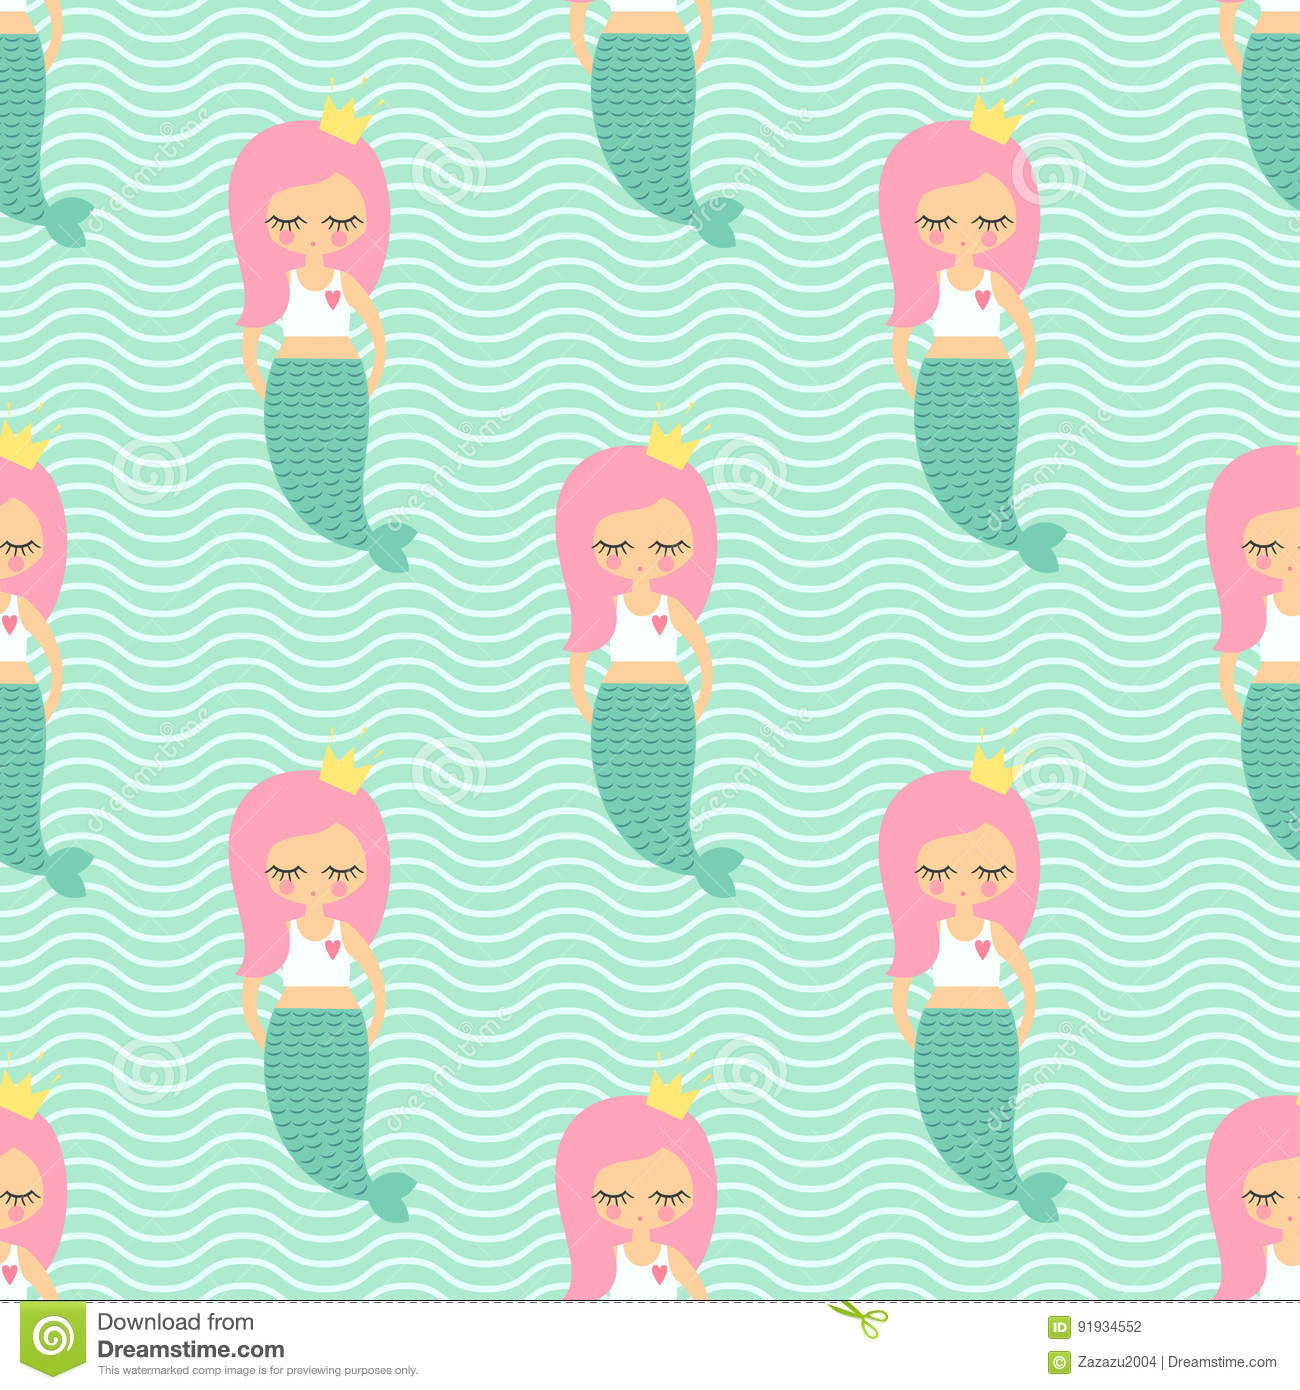 Cute Pink Hair Mermaid Girl Seamless Pattern On Mint Green Waves